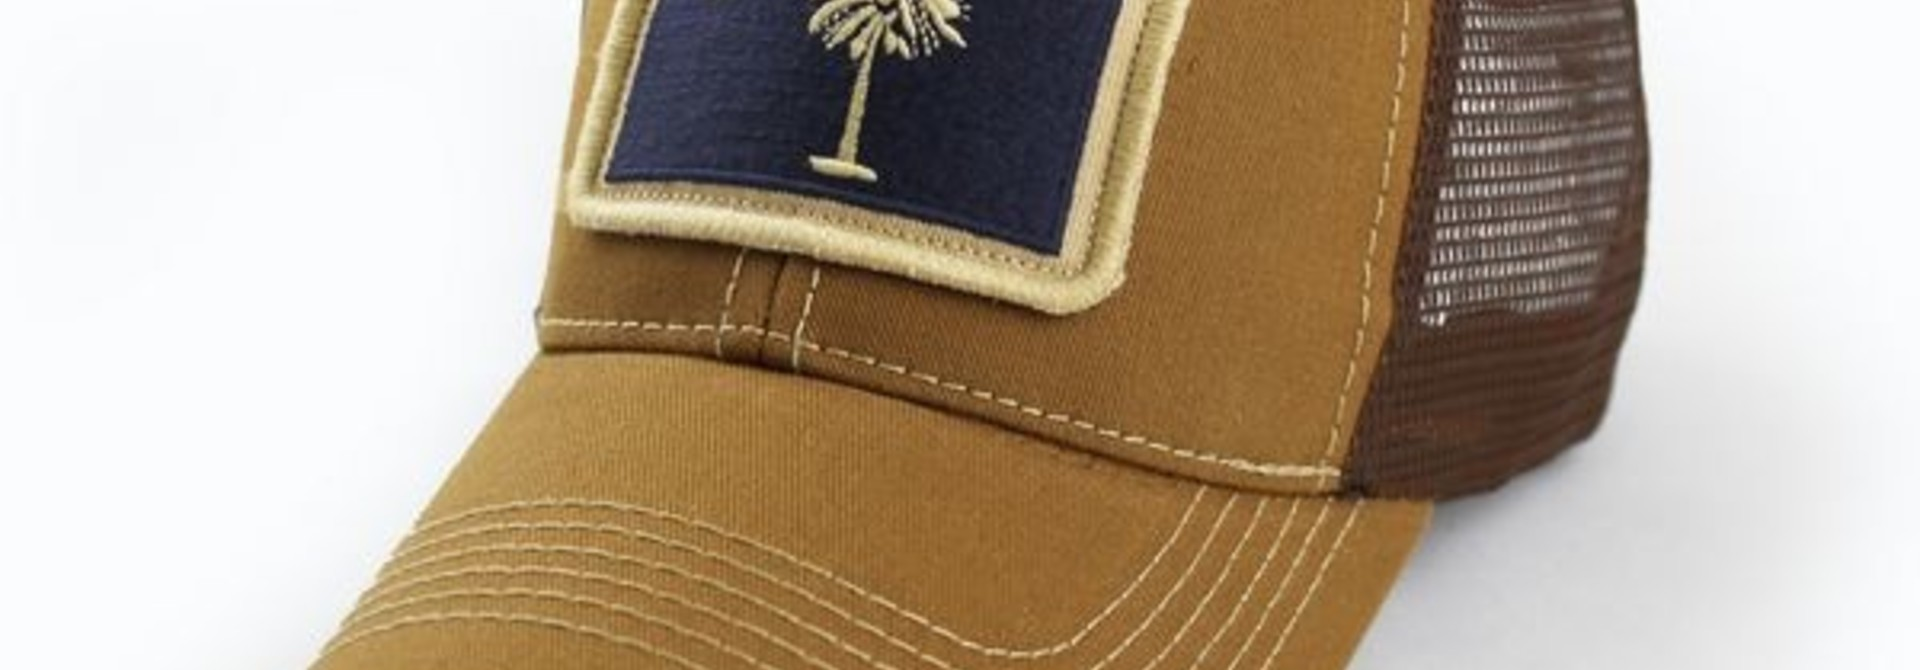 South Carolina Flag Trucker Hat, Structured, Tobacco Brown